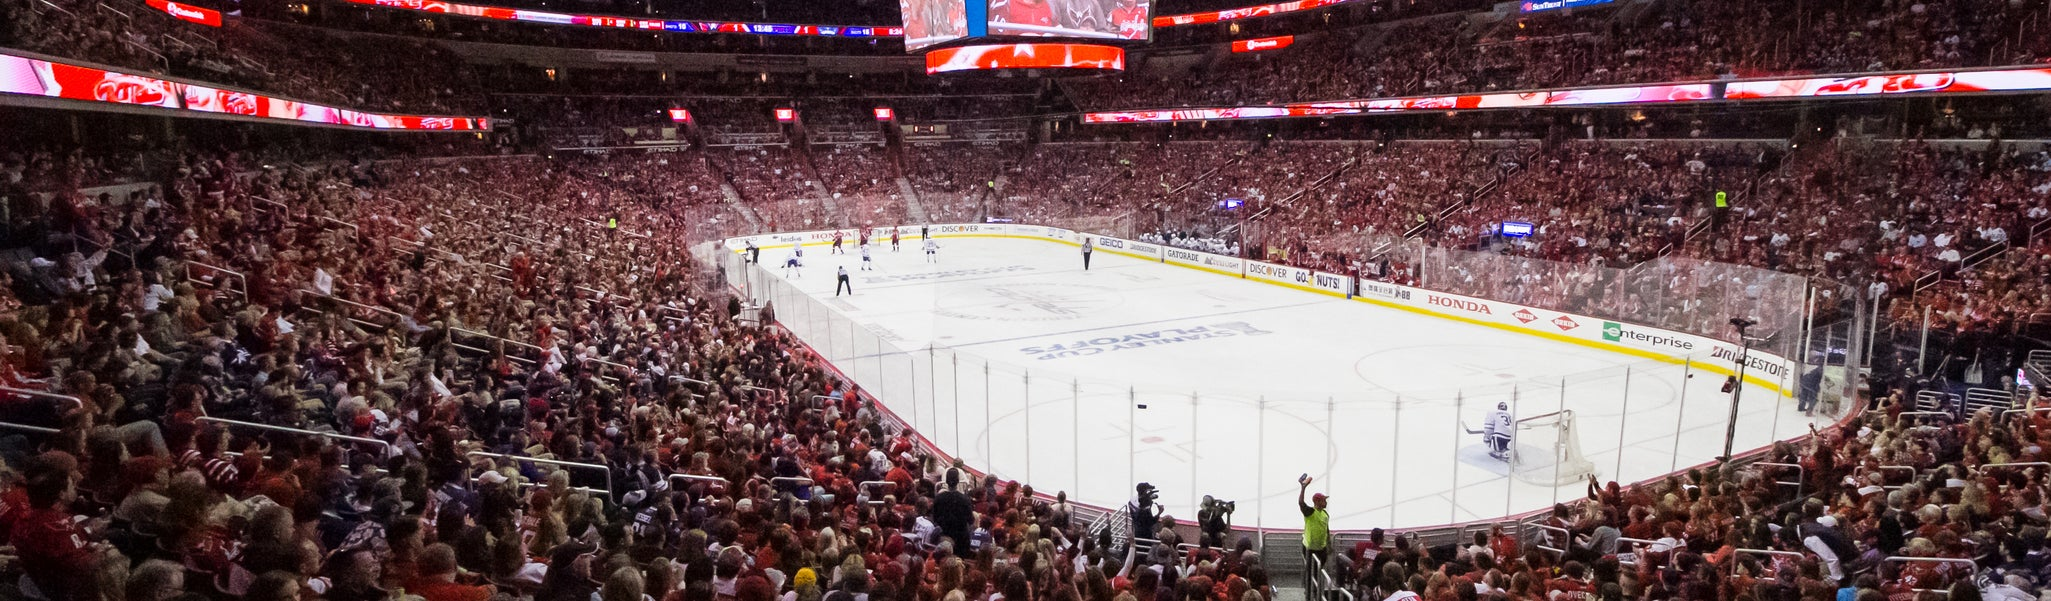 Seat view from LL Preferred 115 at Capital One Arena